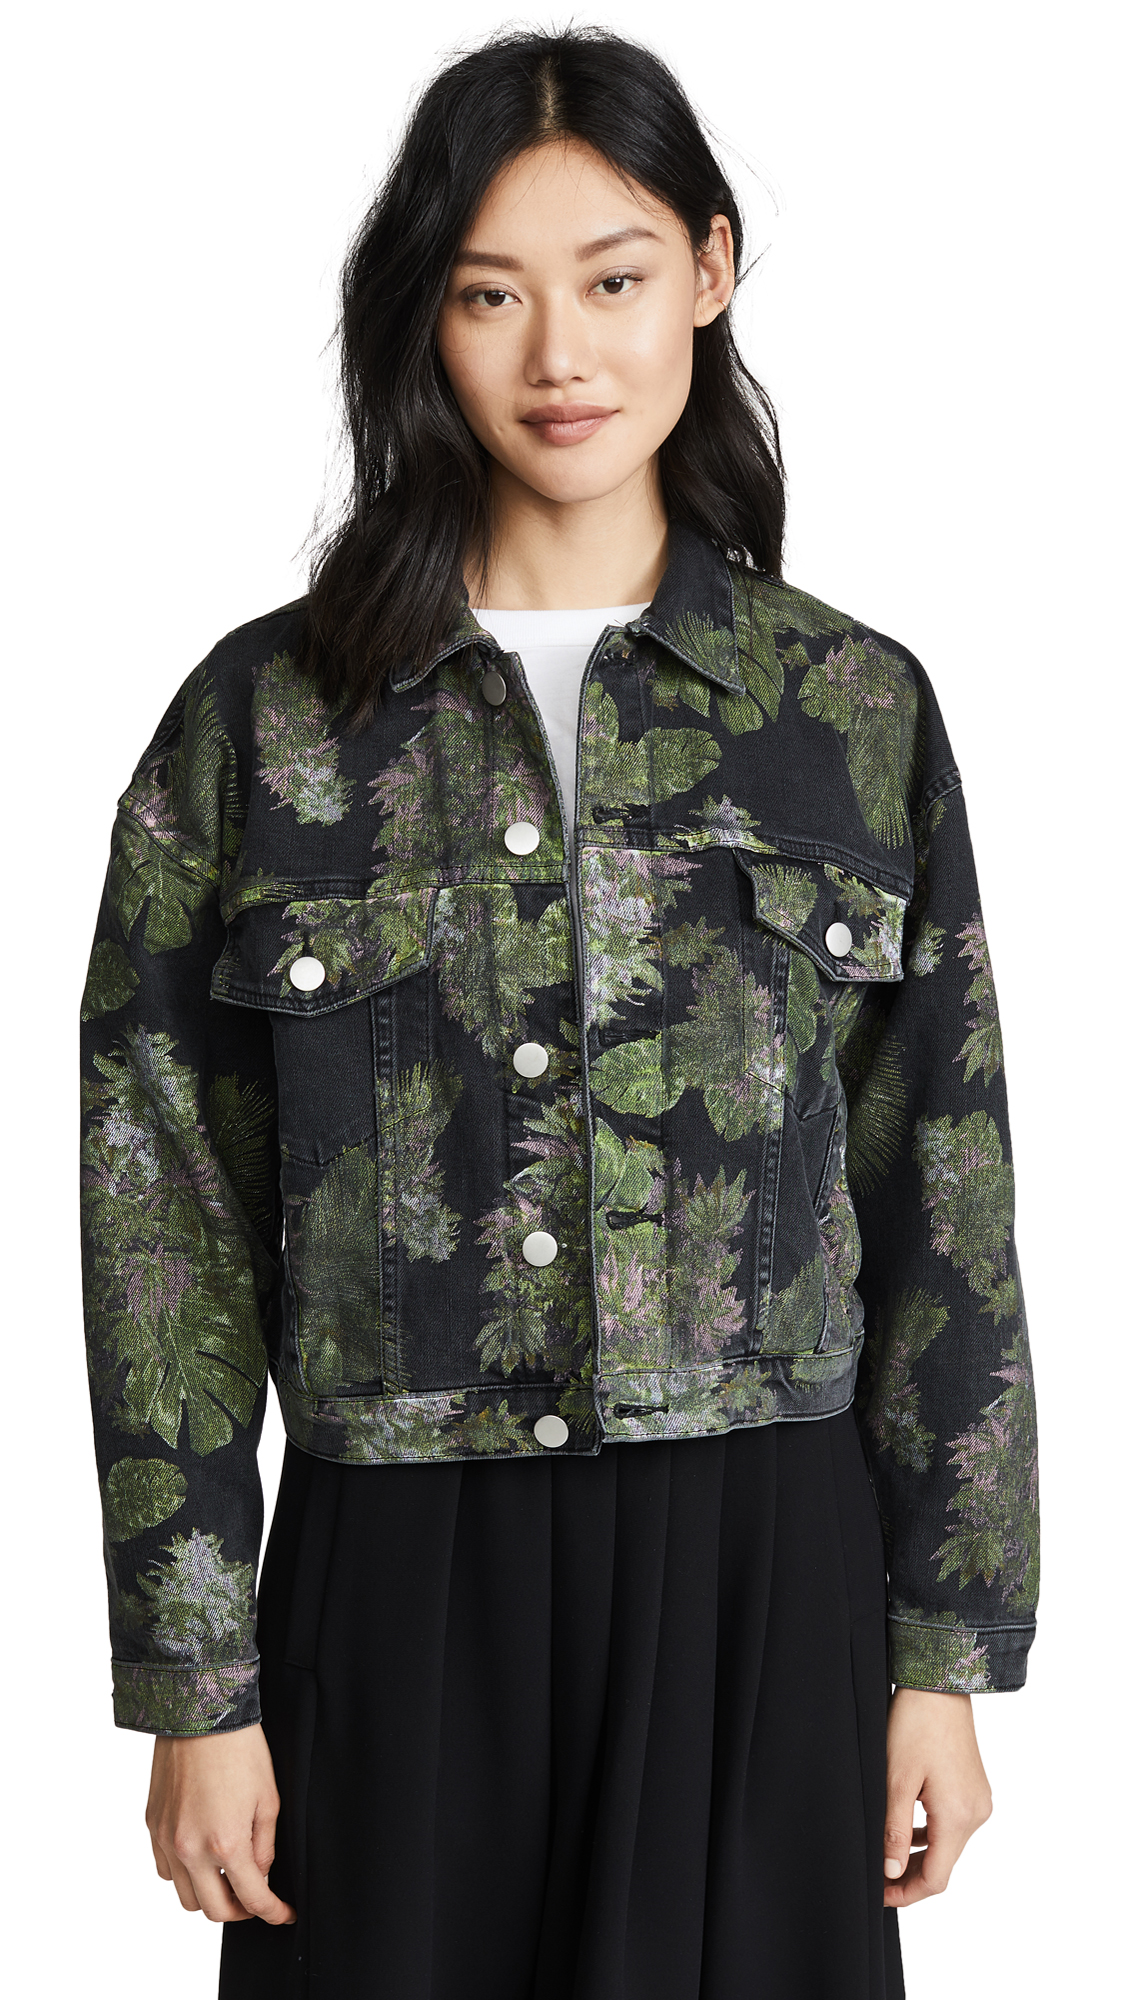 Hudson x Baja East Rei Cropped Jacket In Baja East Weed